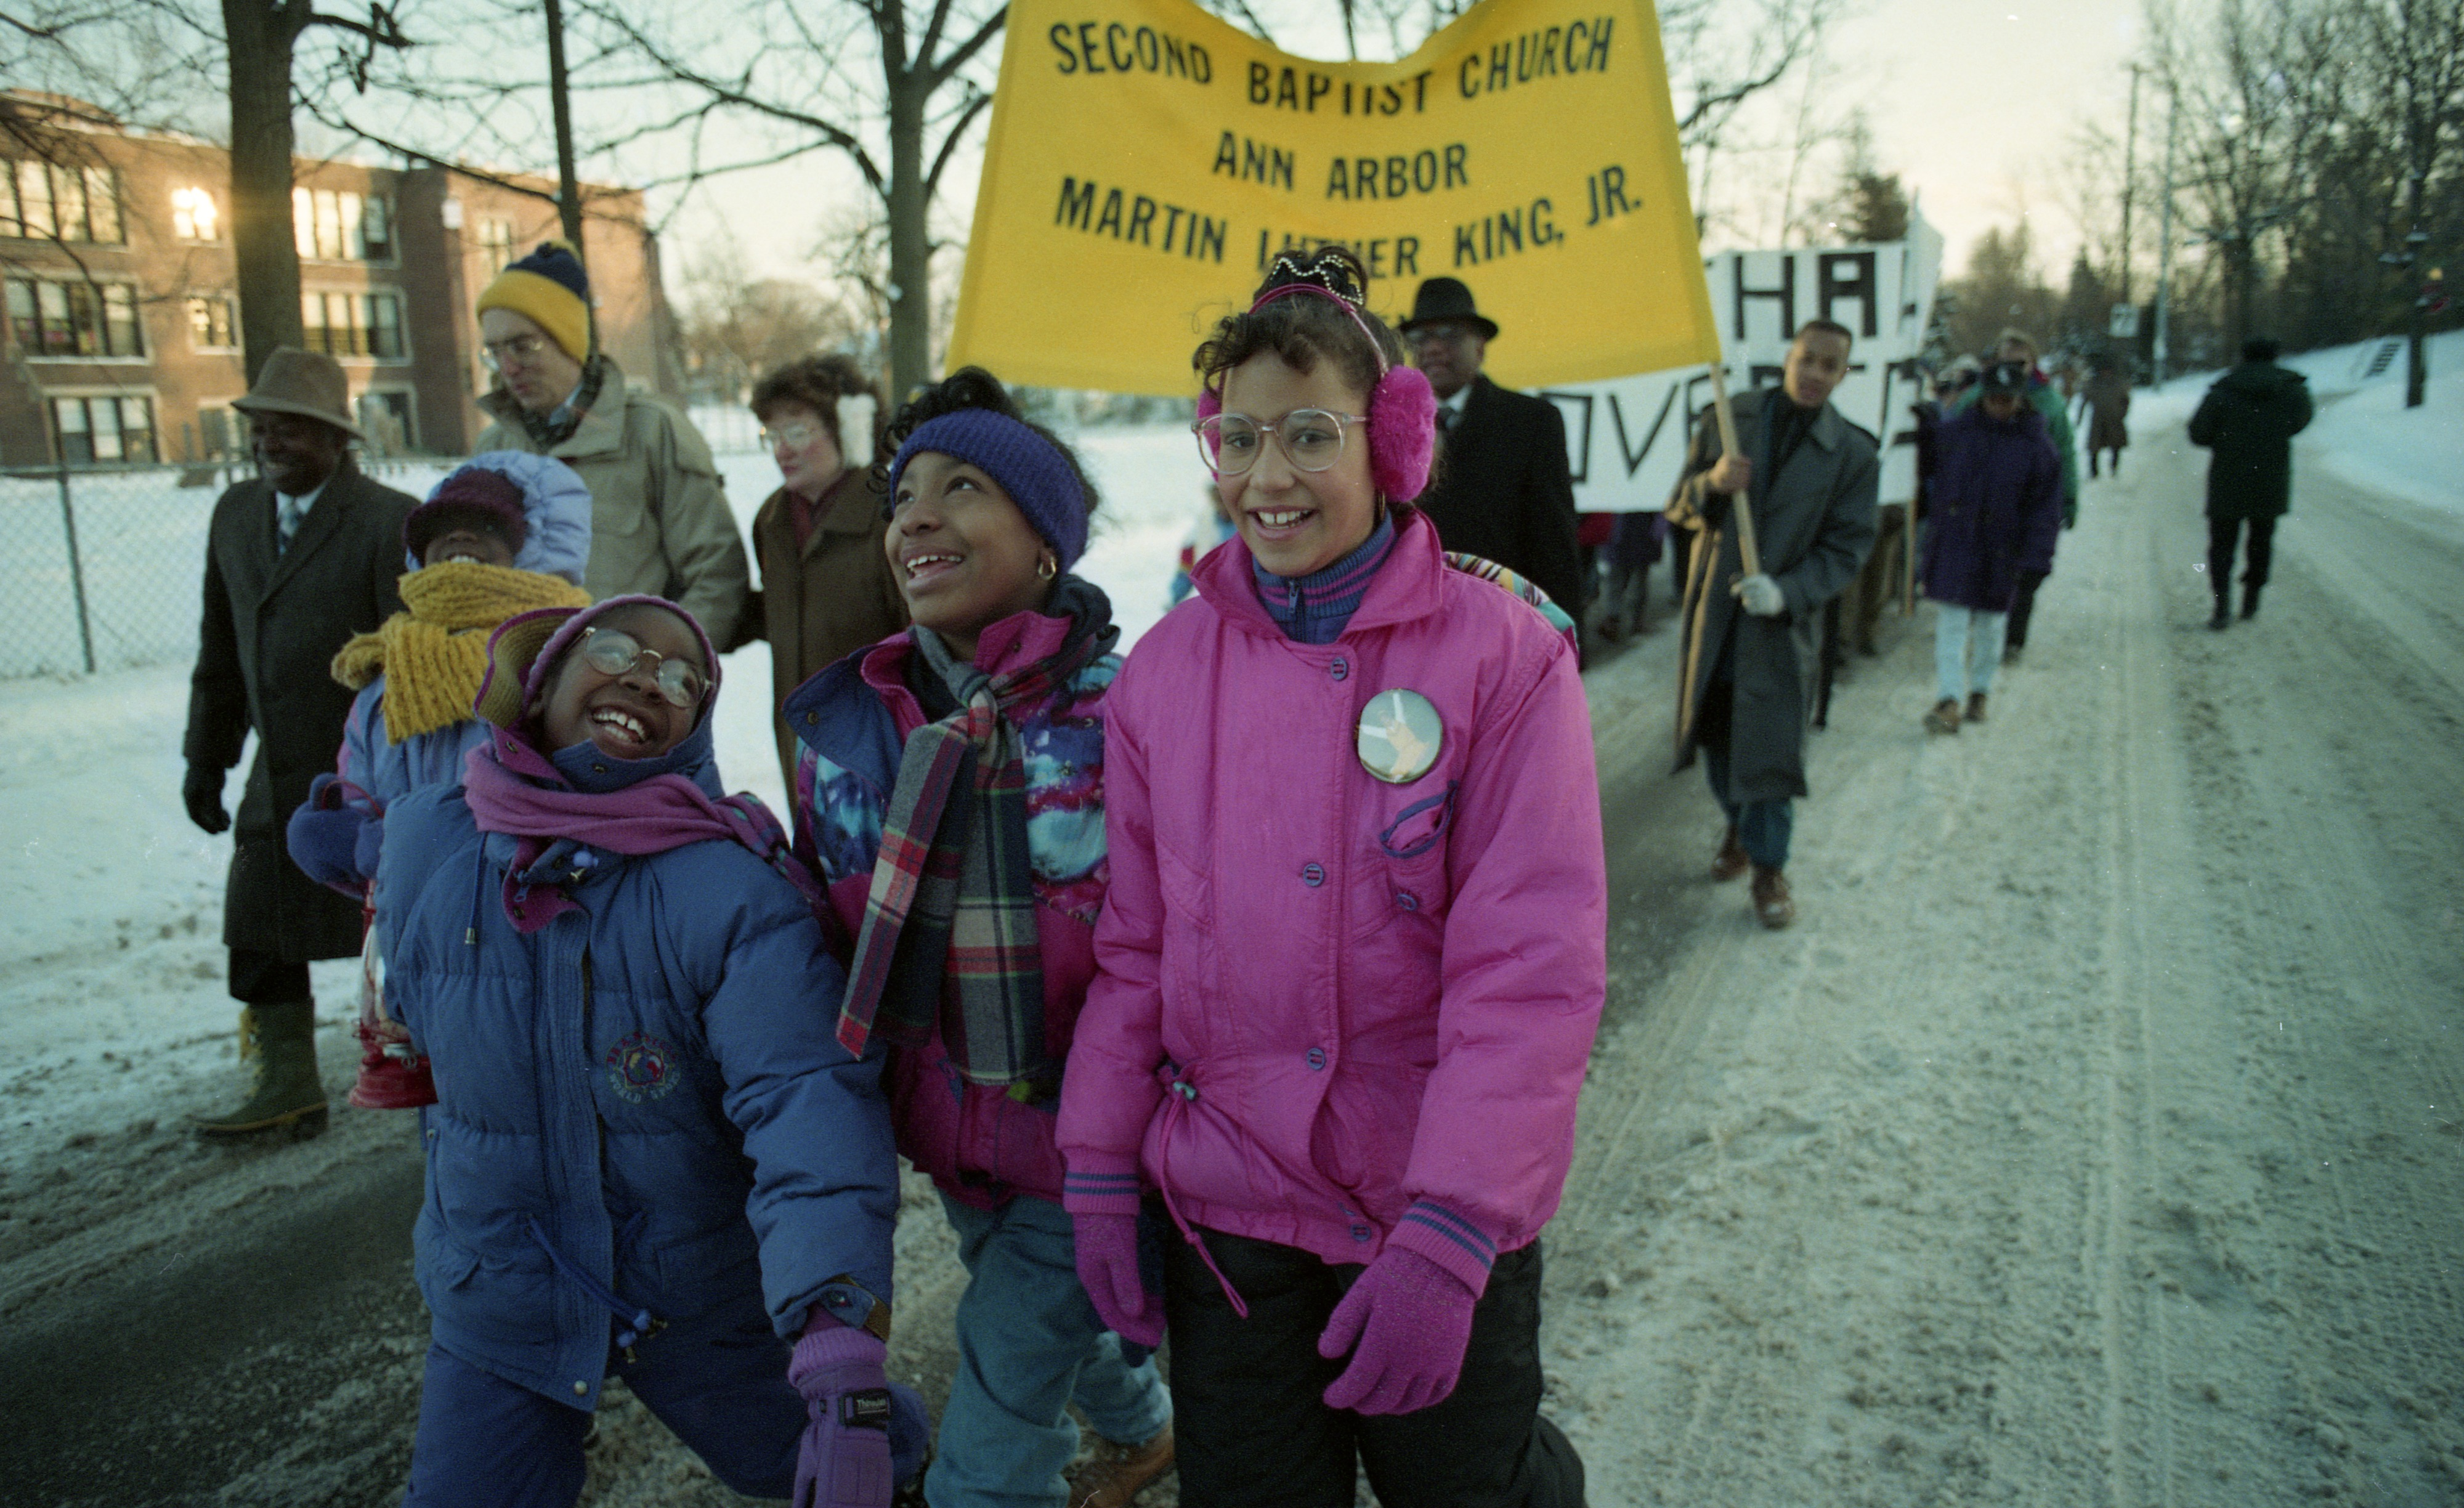 Second Baptist Church Annual Unity March To Honor Dr. Martin Luther King Jr., January 1994 image